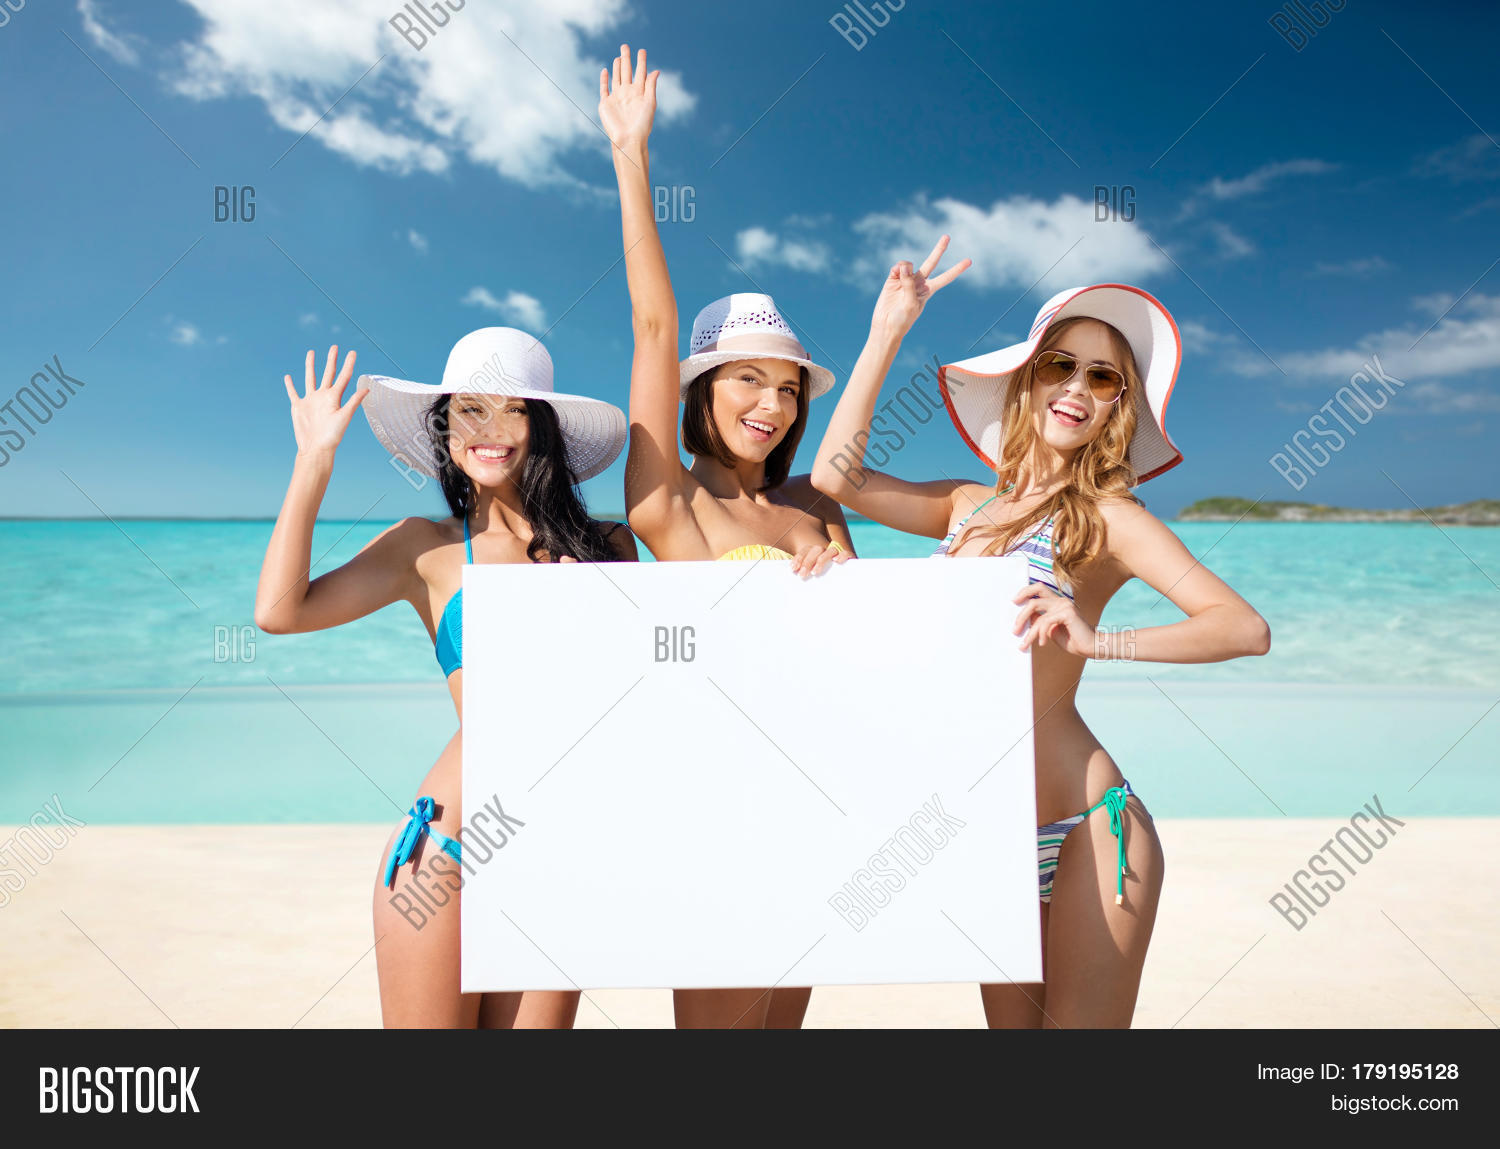 Summer Holidays Travel People Advertisement And Vacation Concept Happy Young Women In Bikinis H 179195128 Image Stock Photo